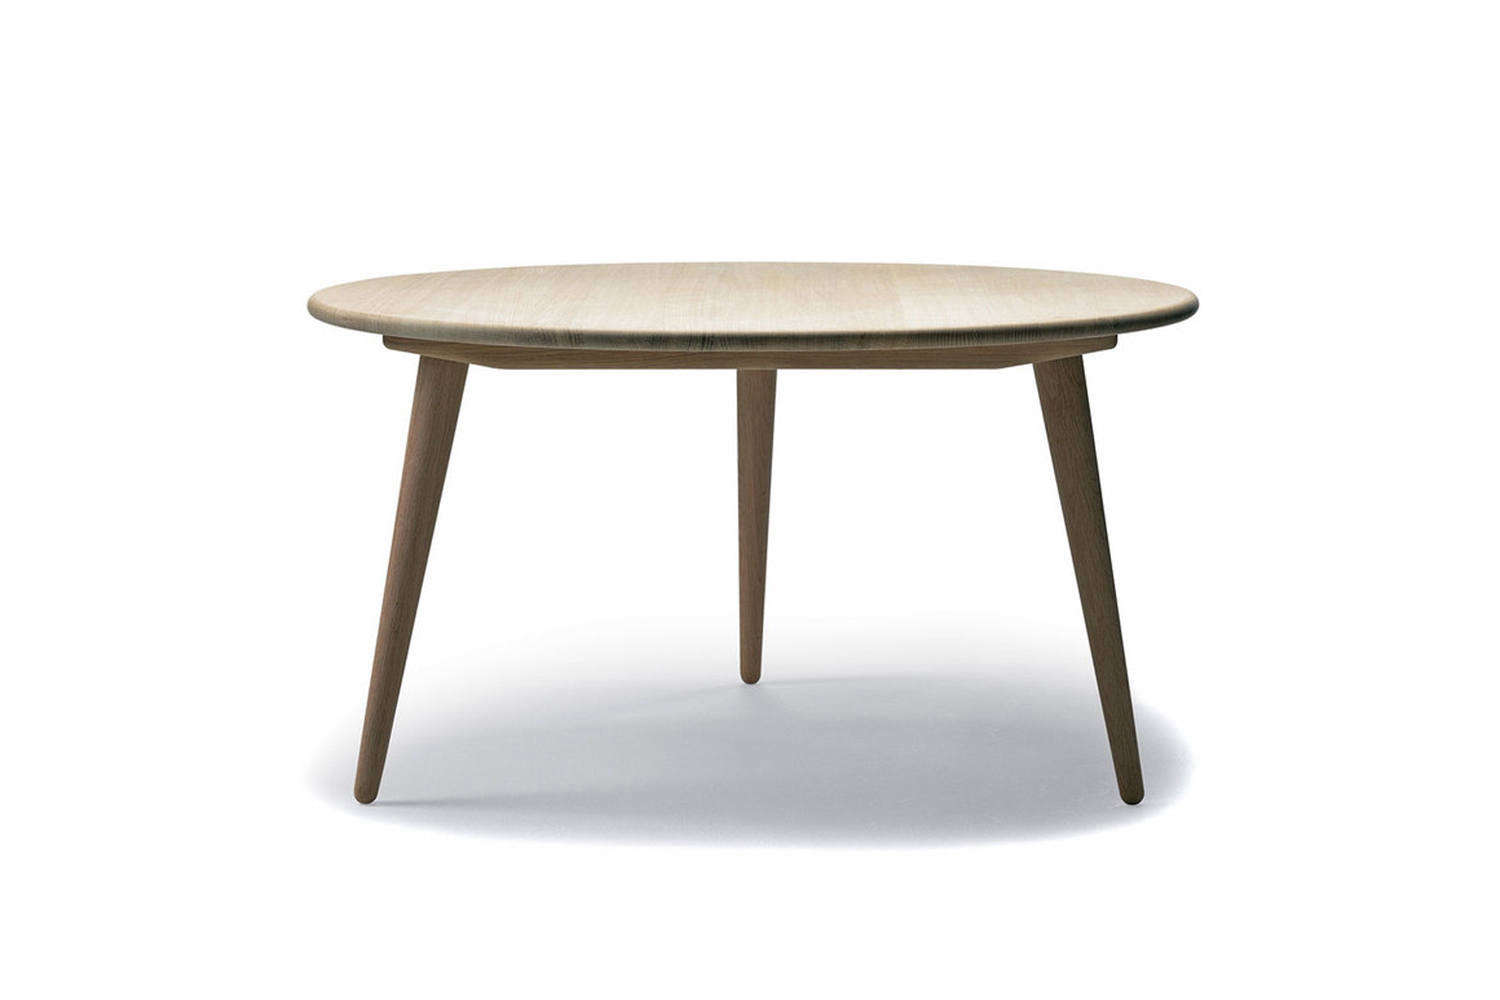 The Hans Wegner CH008 Low Table was first designed in 54; $loading=